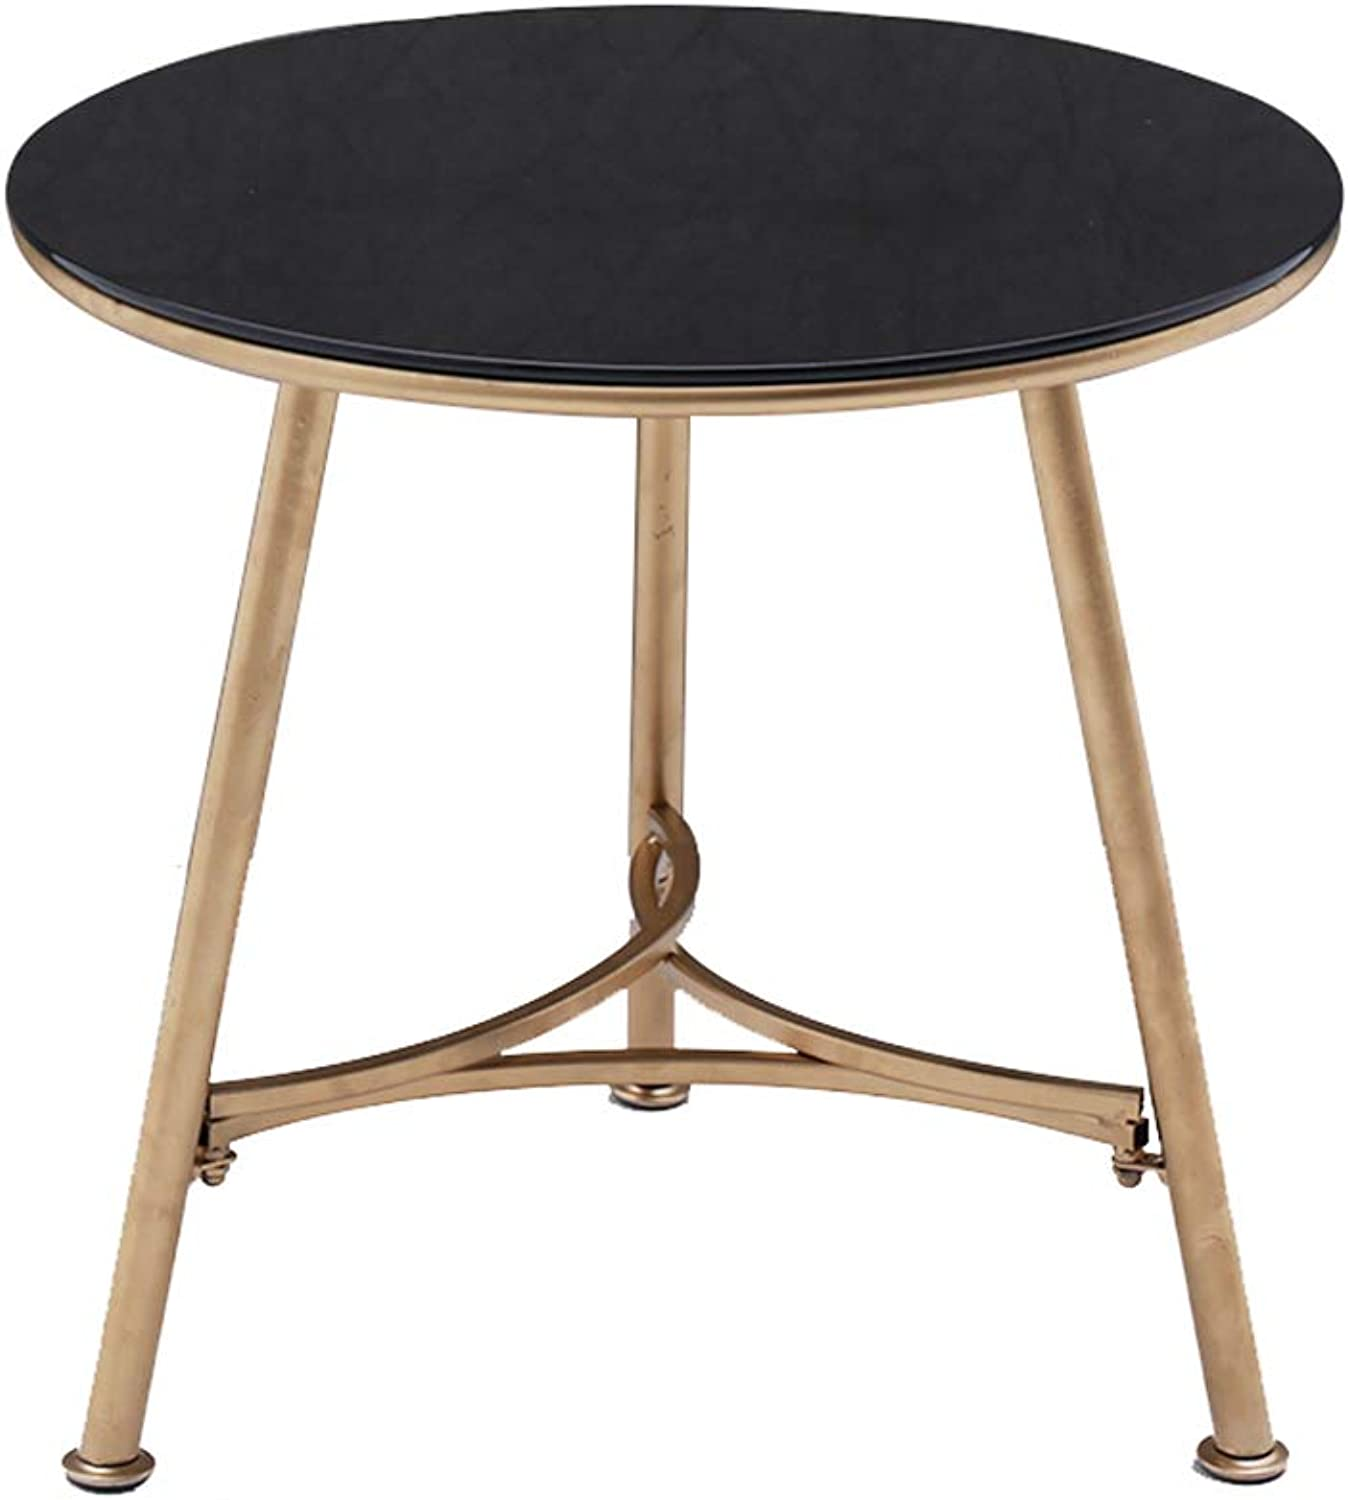 Dekea Coffee Table with Round Marble Top Accent Round Side End Tables with Metal Box Frame for Living Room, Black gold